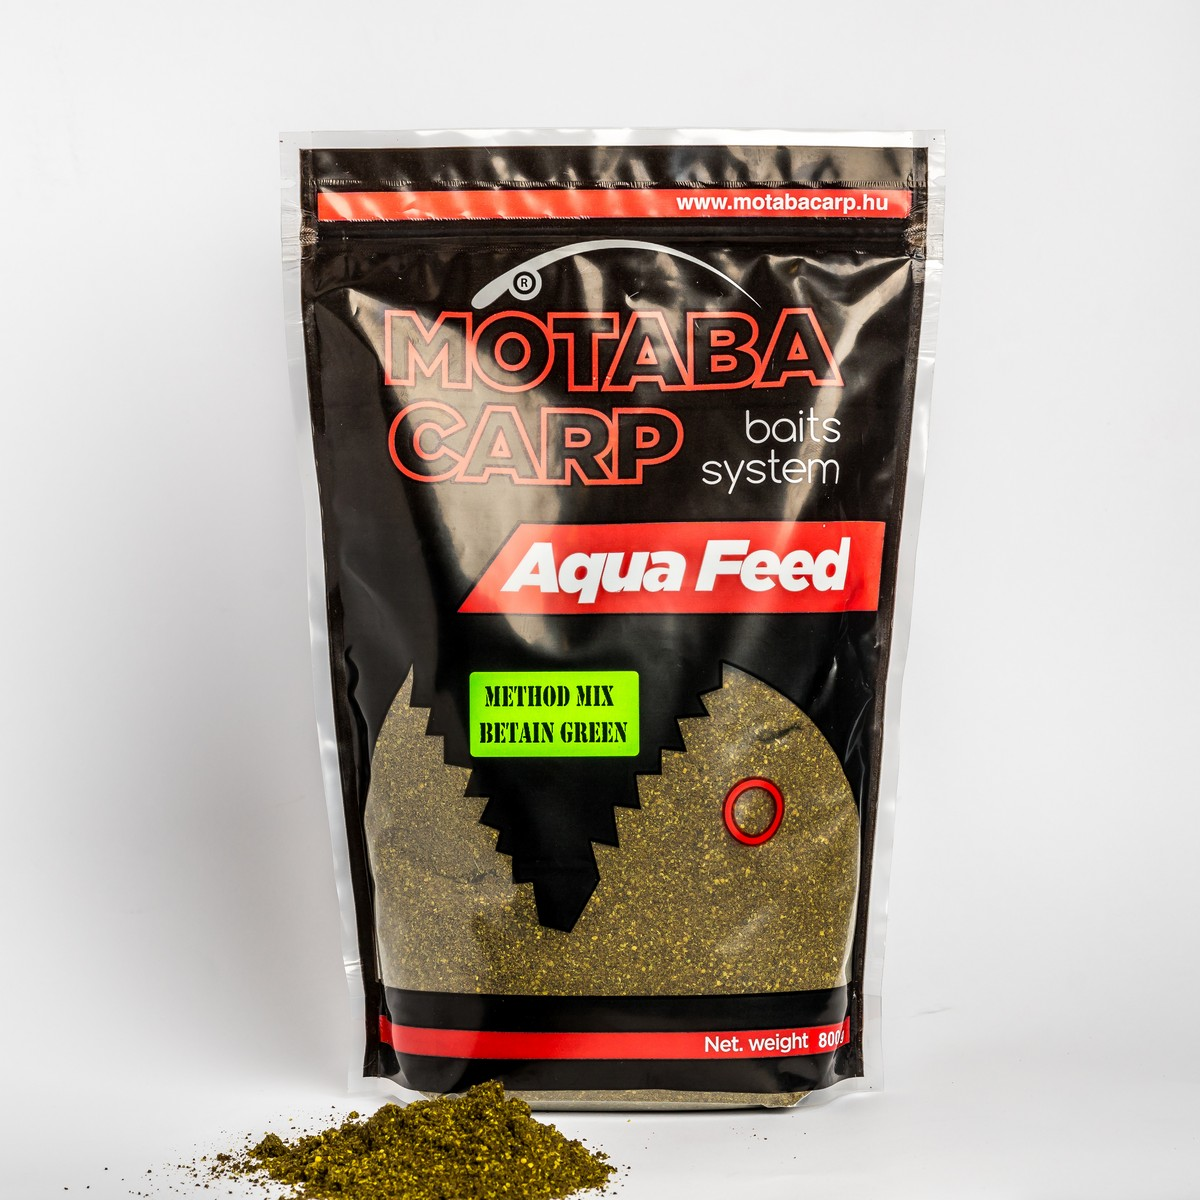 MOTABA CARP METHOD MIX BETAIN GREEN 800G